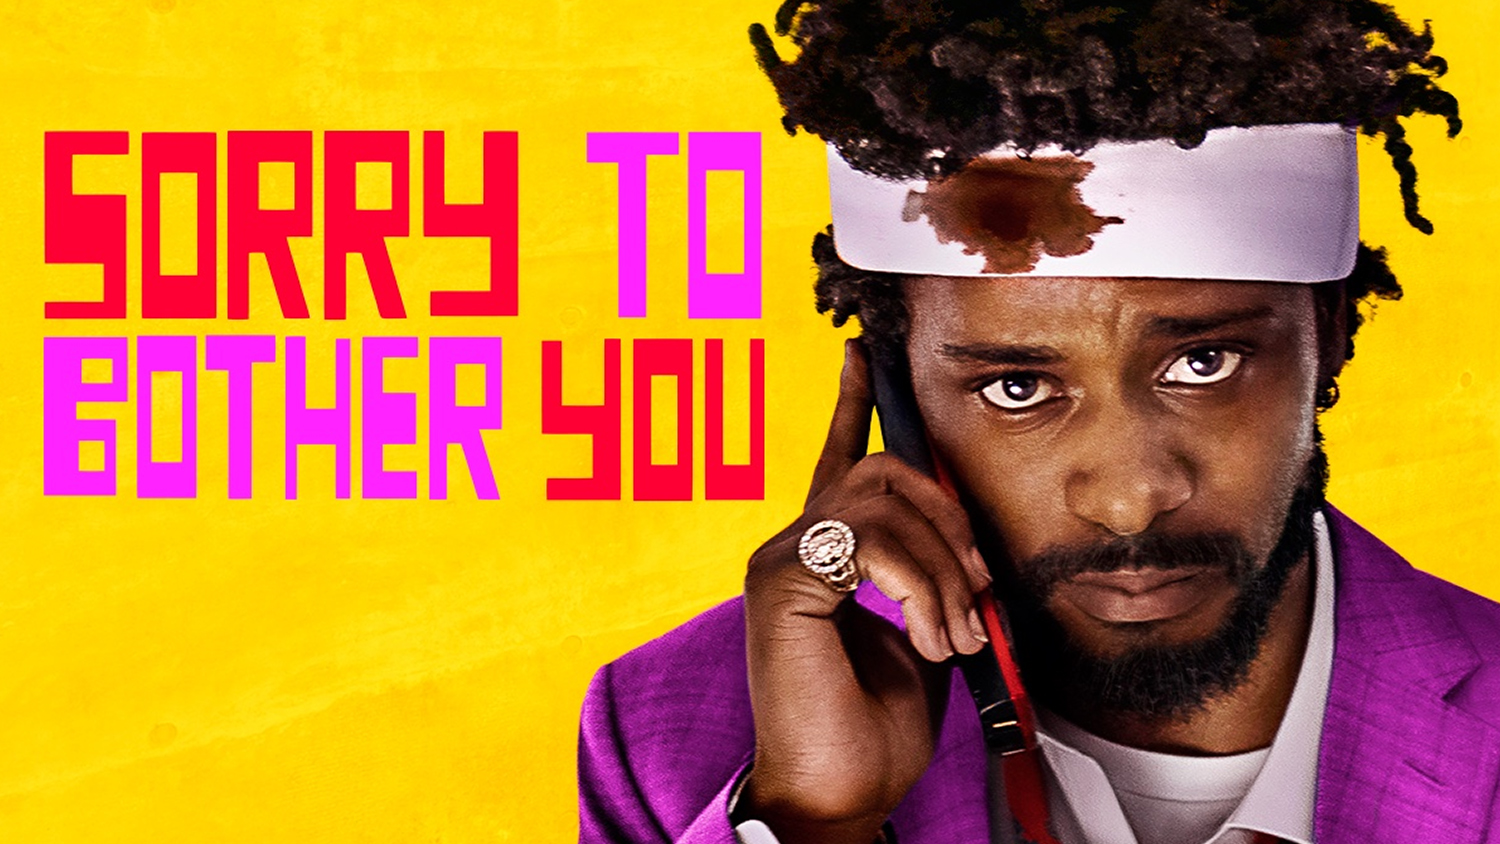 The not-so-subtle tendencies of 'Sorry to Bother You' - An